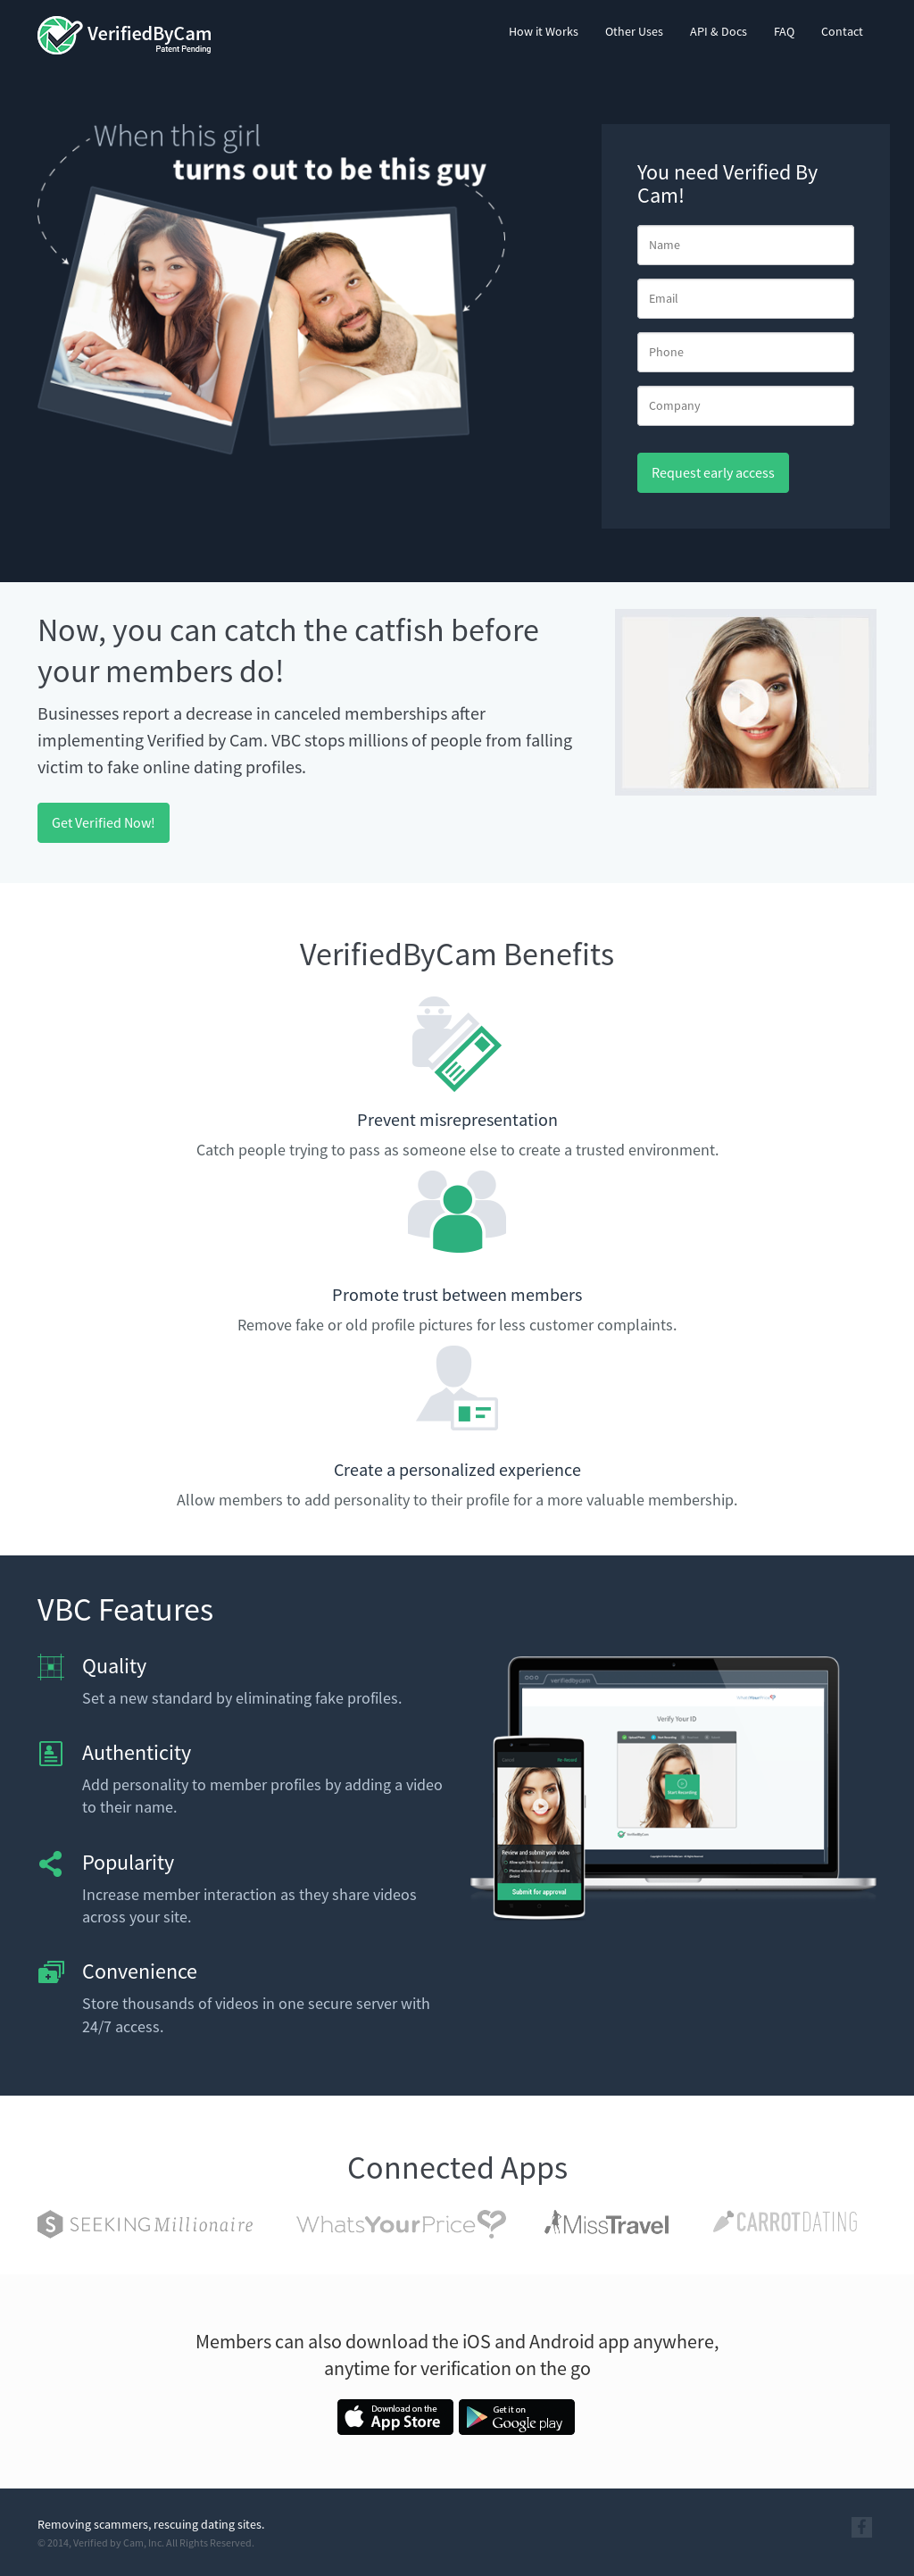 Verifiedbycam Competitors, Revenue and Employees - Owler Company Profile